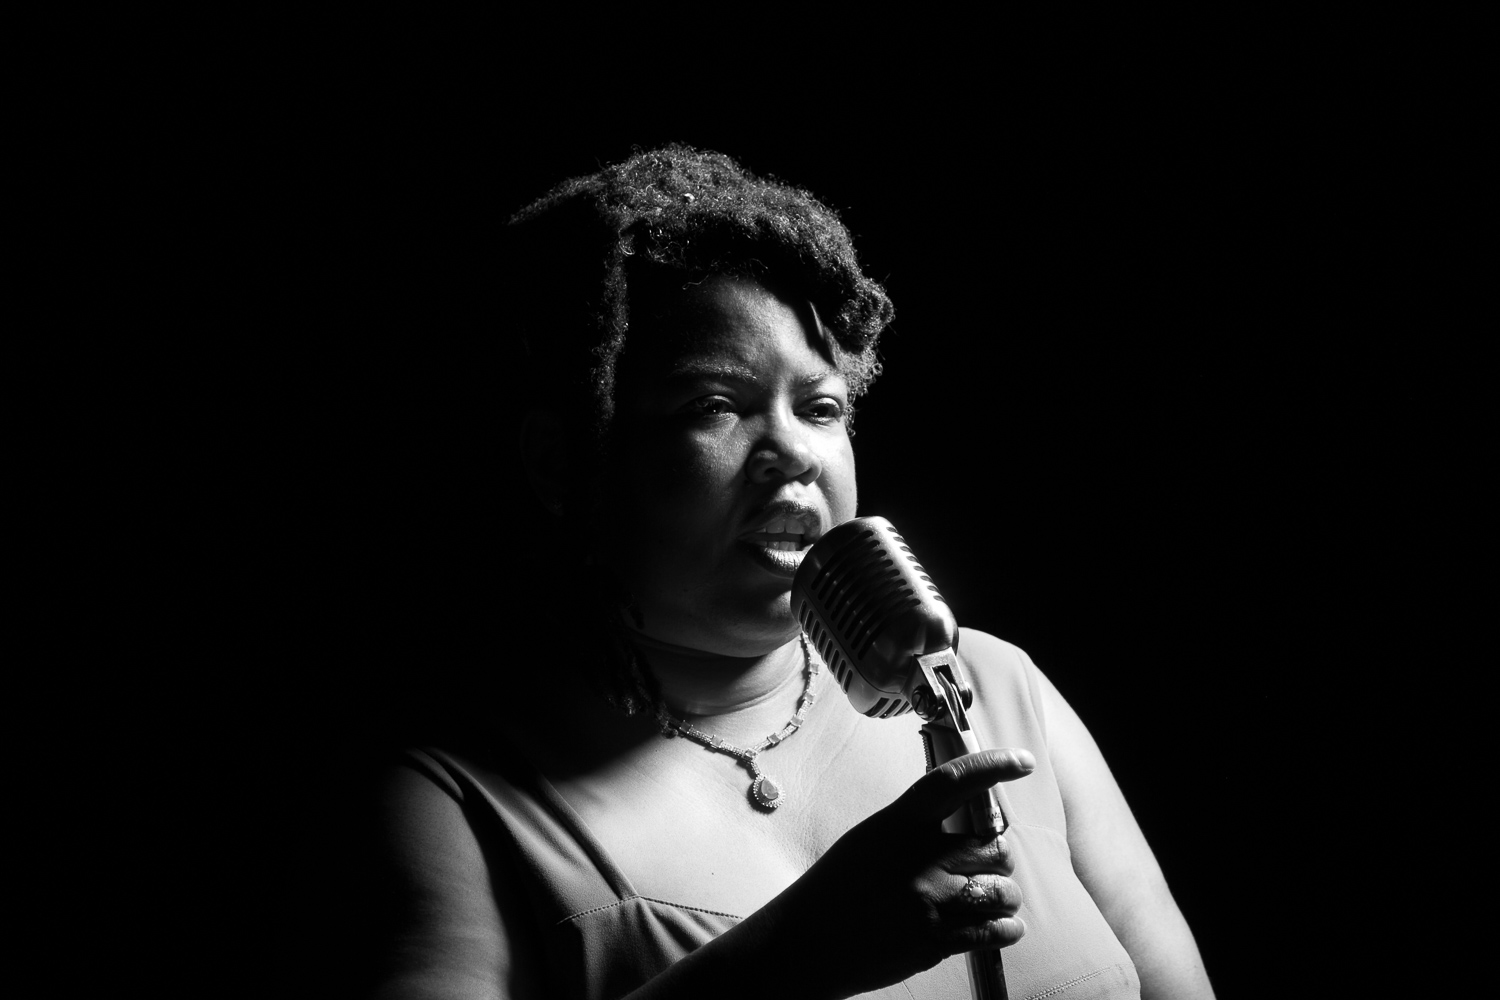 Woman in dark room, illuminated softly and holding microphone with their mouth open